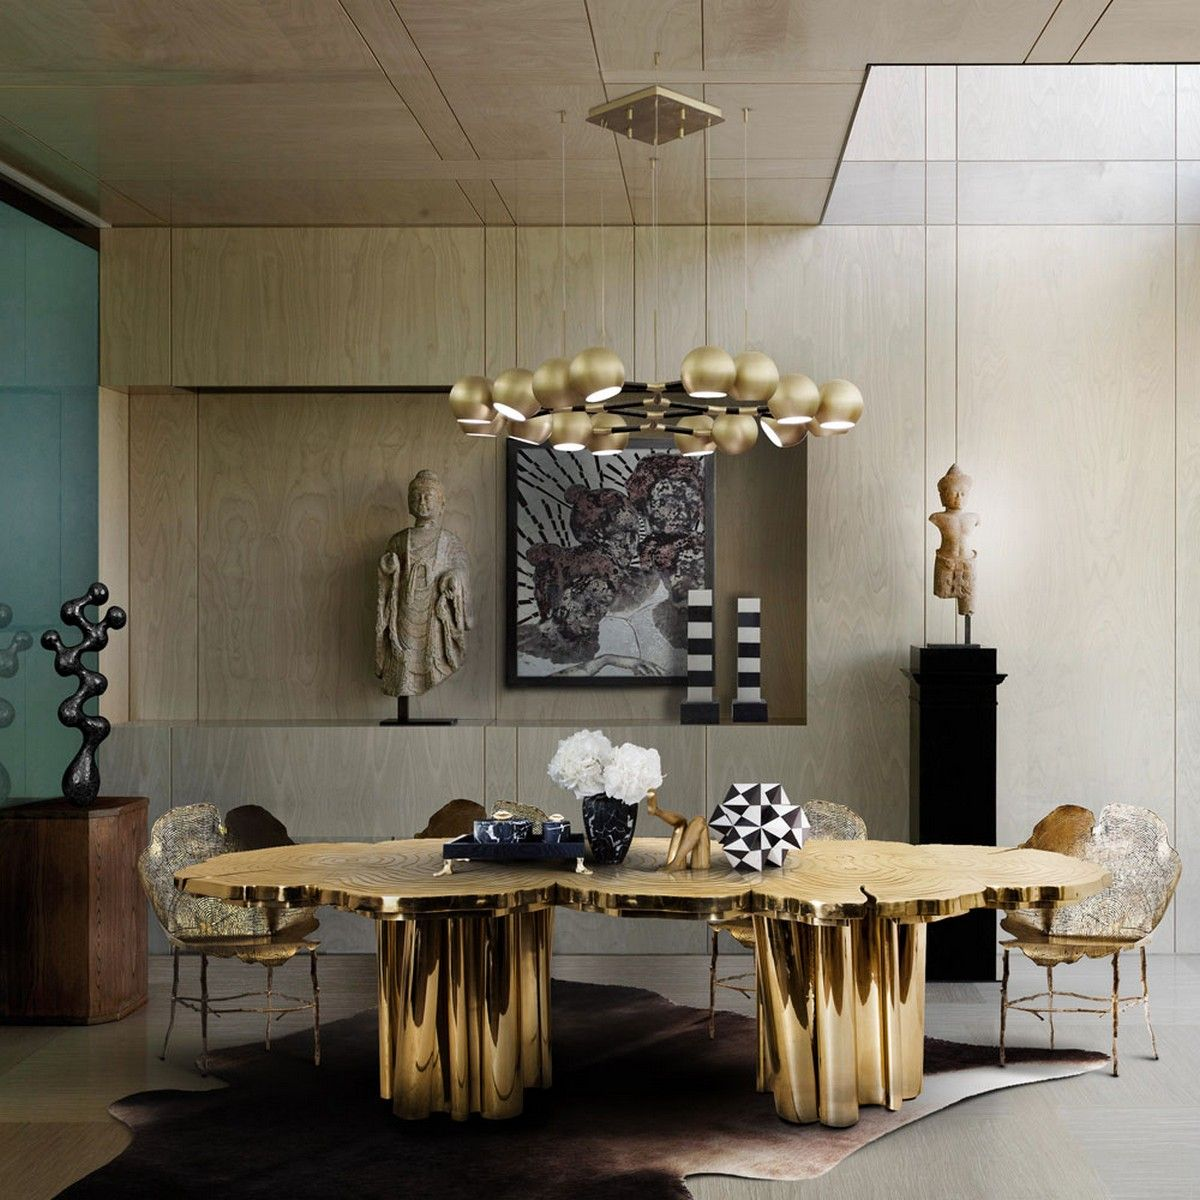 Expensive Dining Tables Will Be Our Theme For Today From Marvelous Concepts To Astonishing Details Luxury